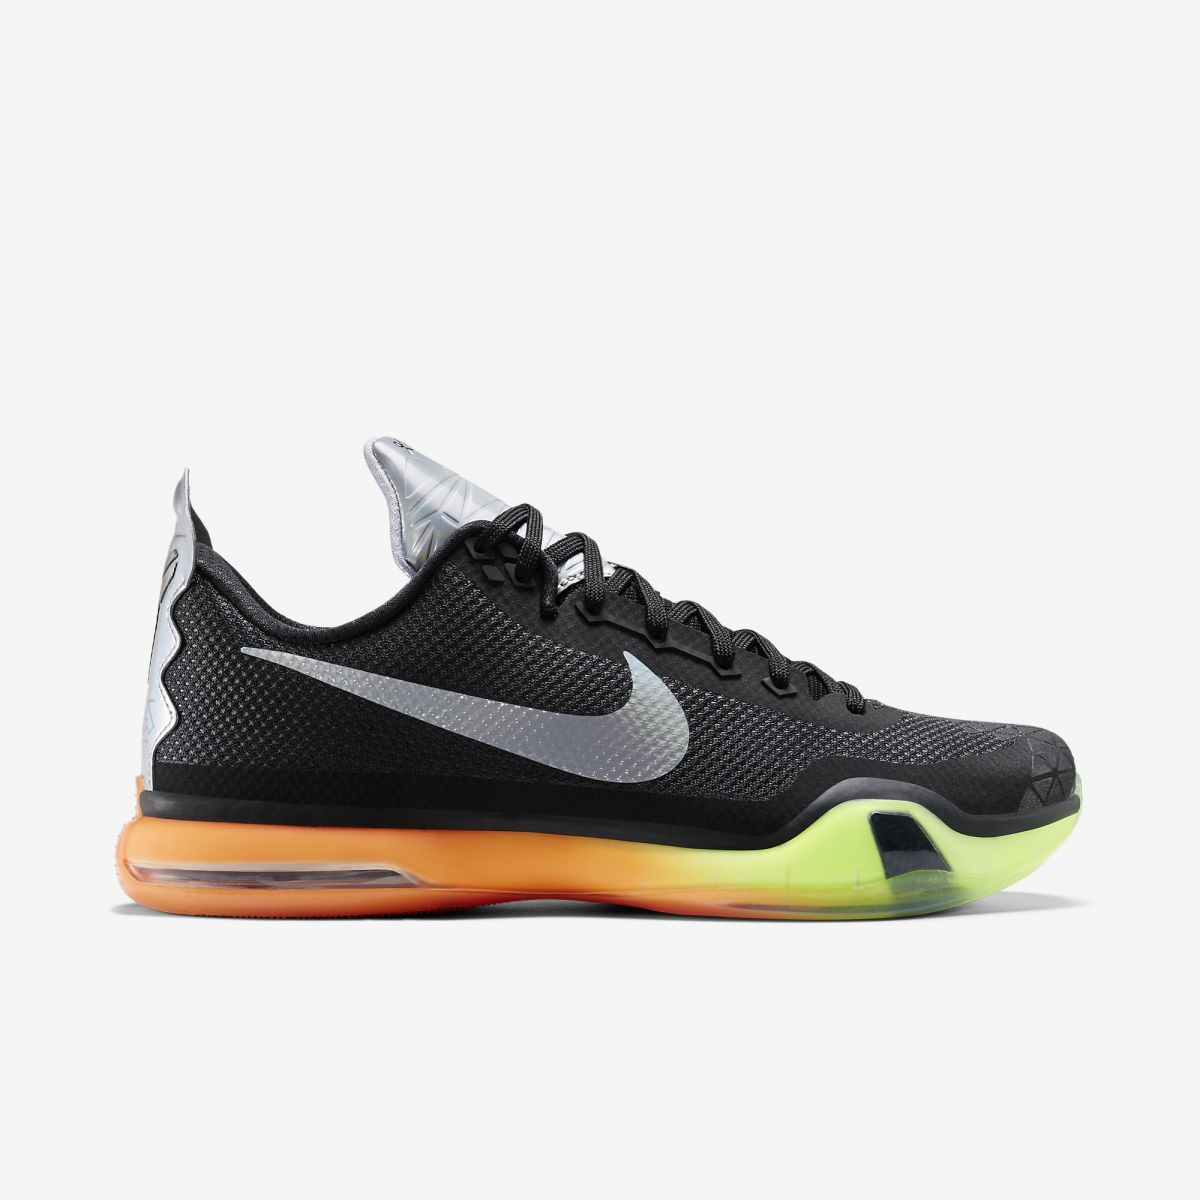 b807414cfa13 The Complete Guide to the Nike Kobe 10